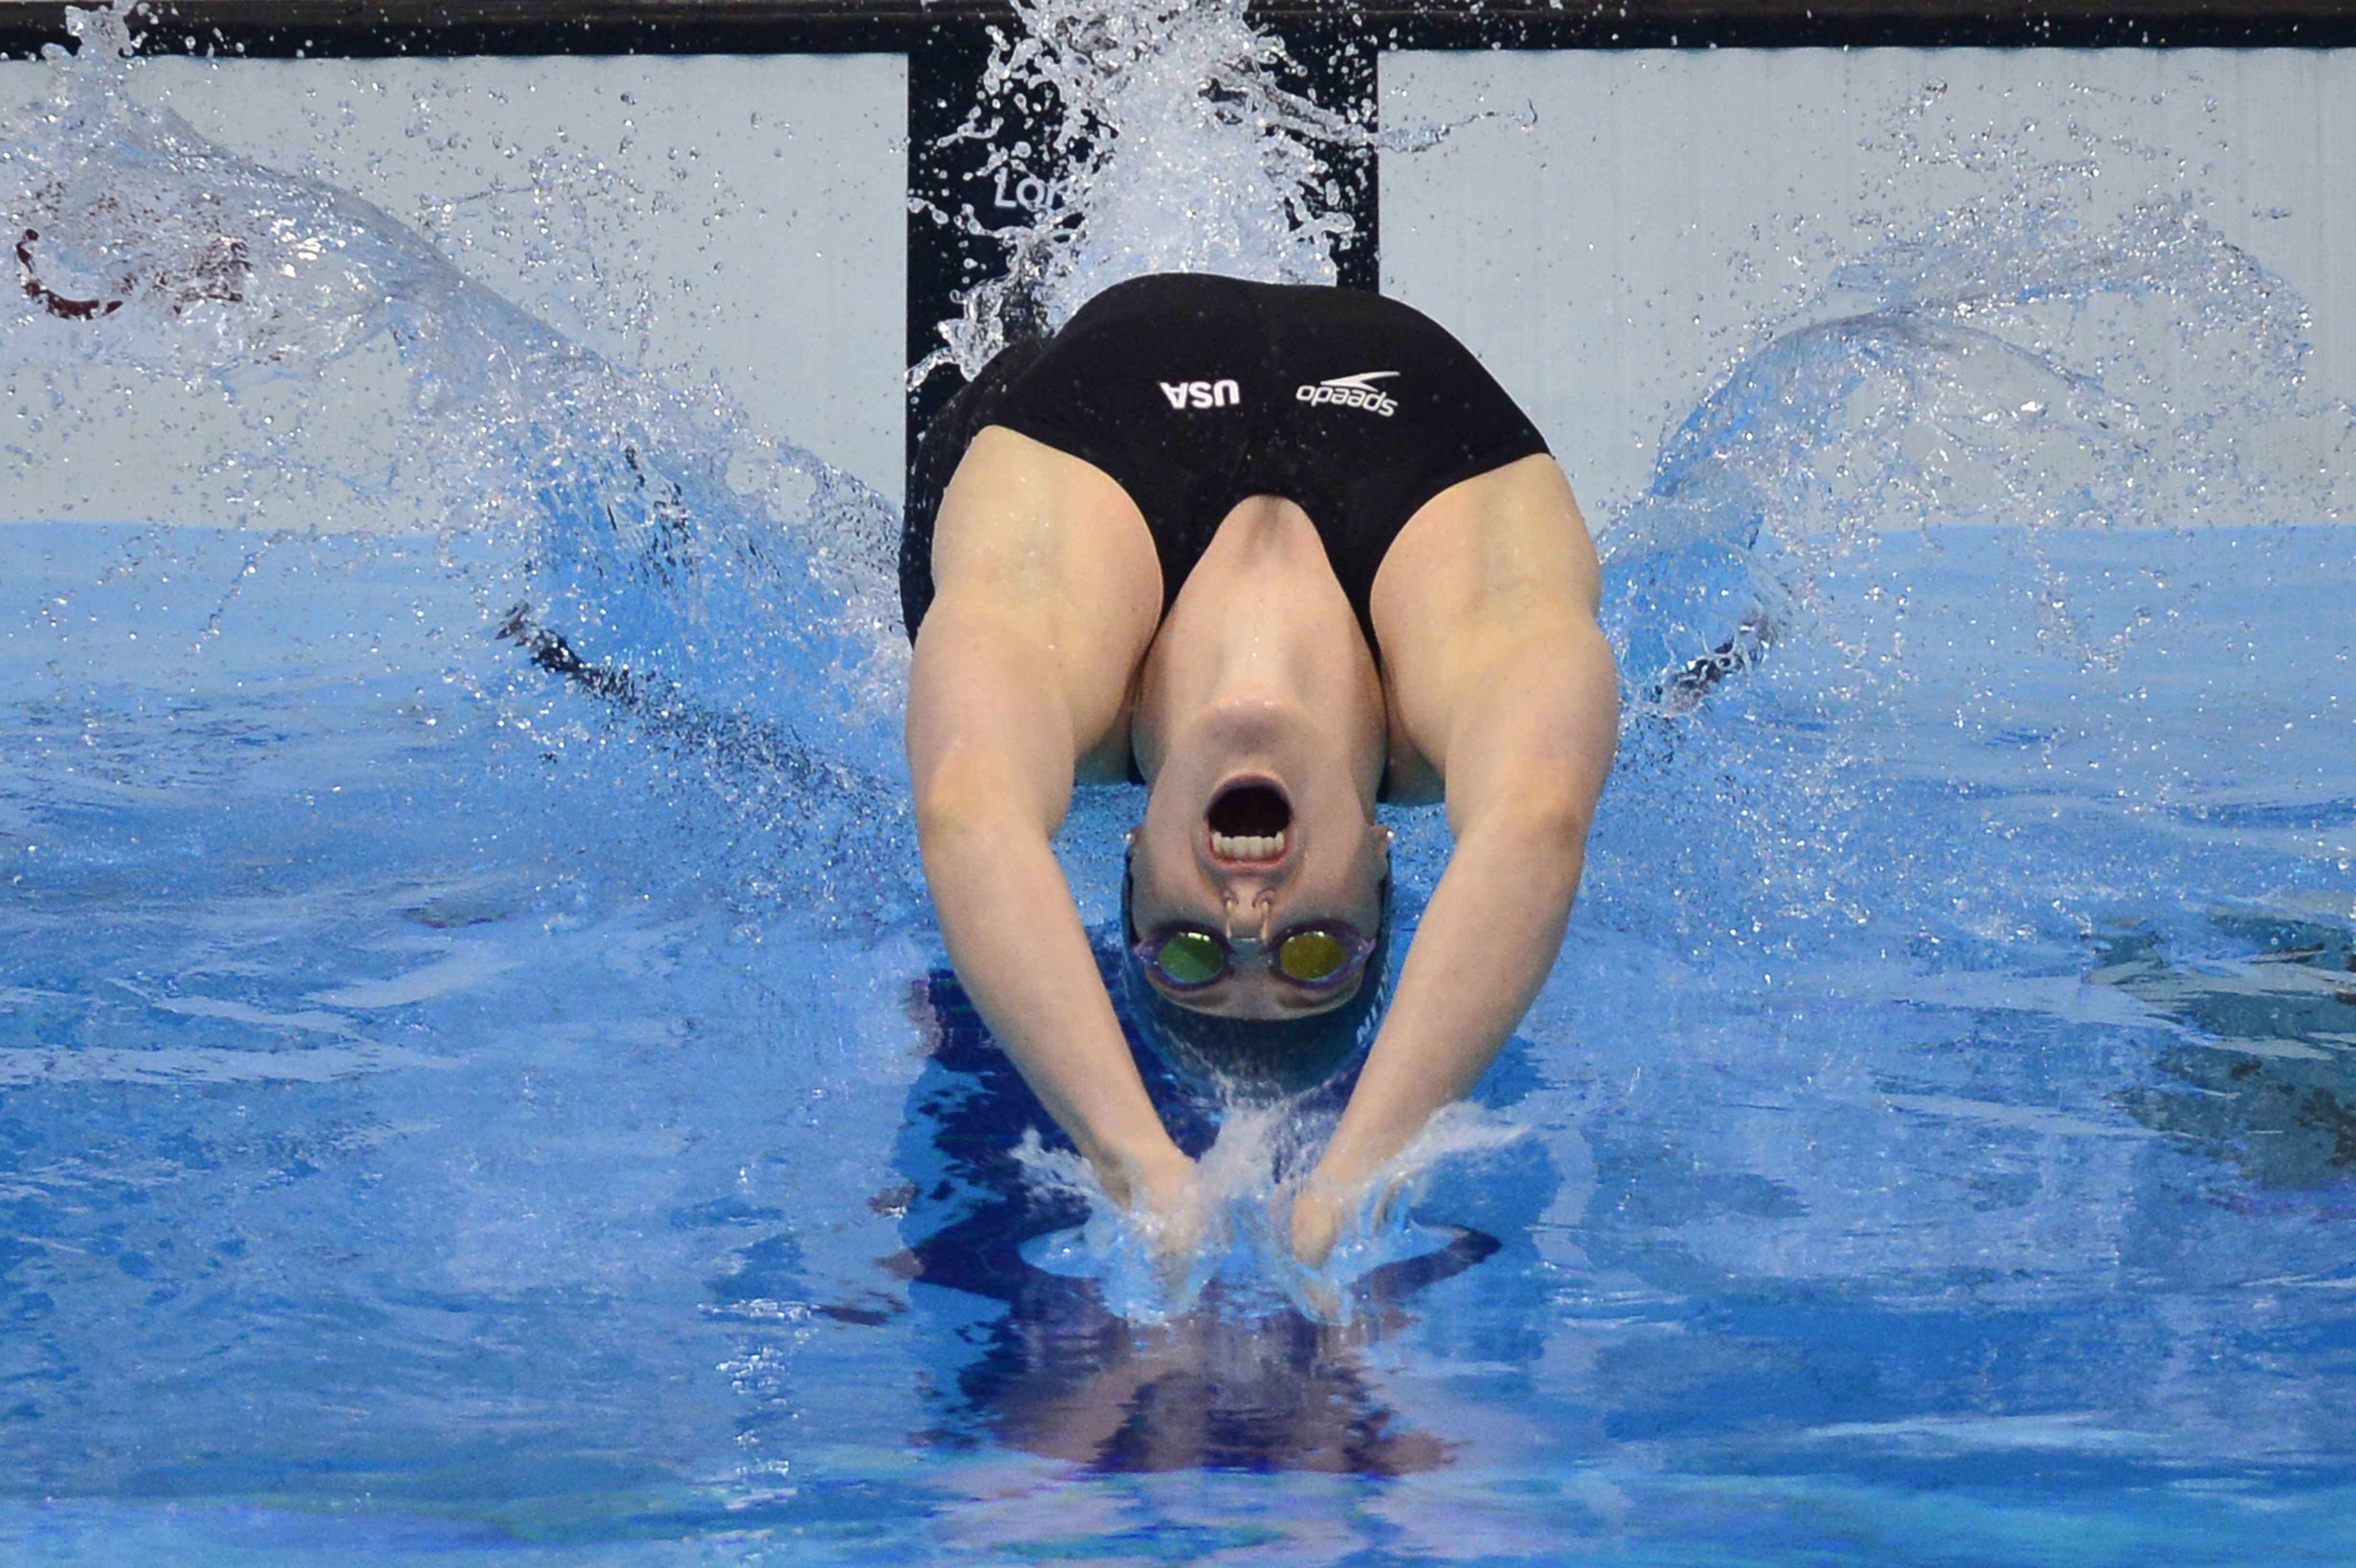 US swimmer Missy Franklin dives in at the start of the women's 100m backstroke final swimming event at the London 2012 Olympic Games on July 30, 2012 in London. (credit: FABRICE COFFRINI/AFP/GettyImages)